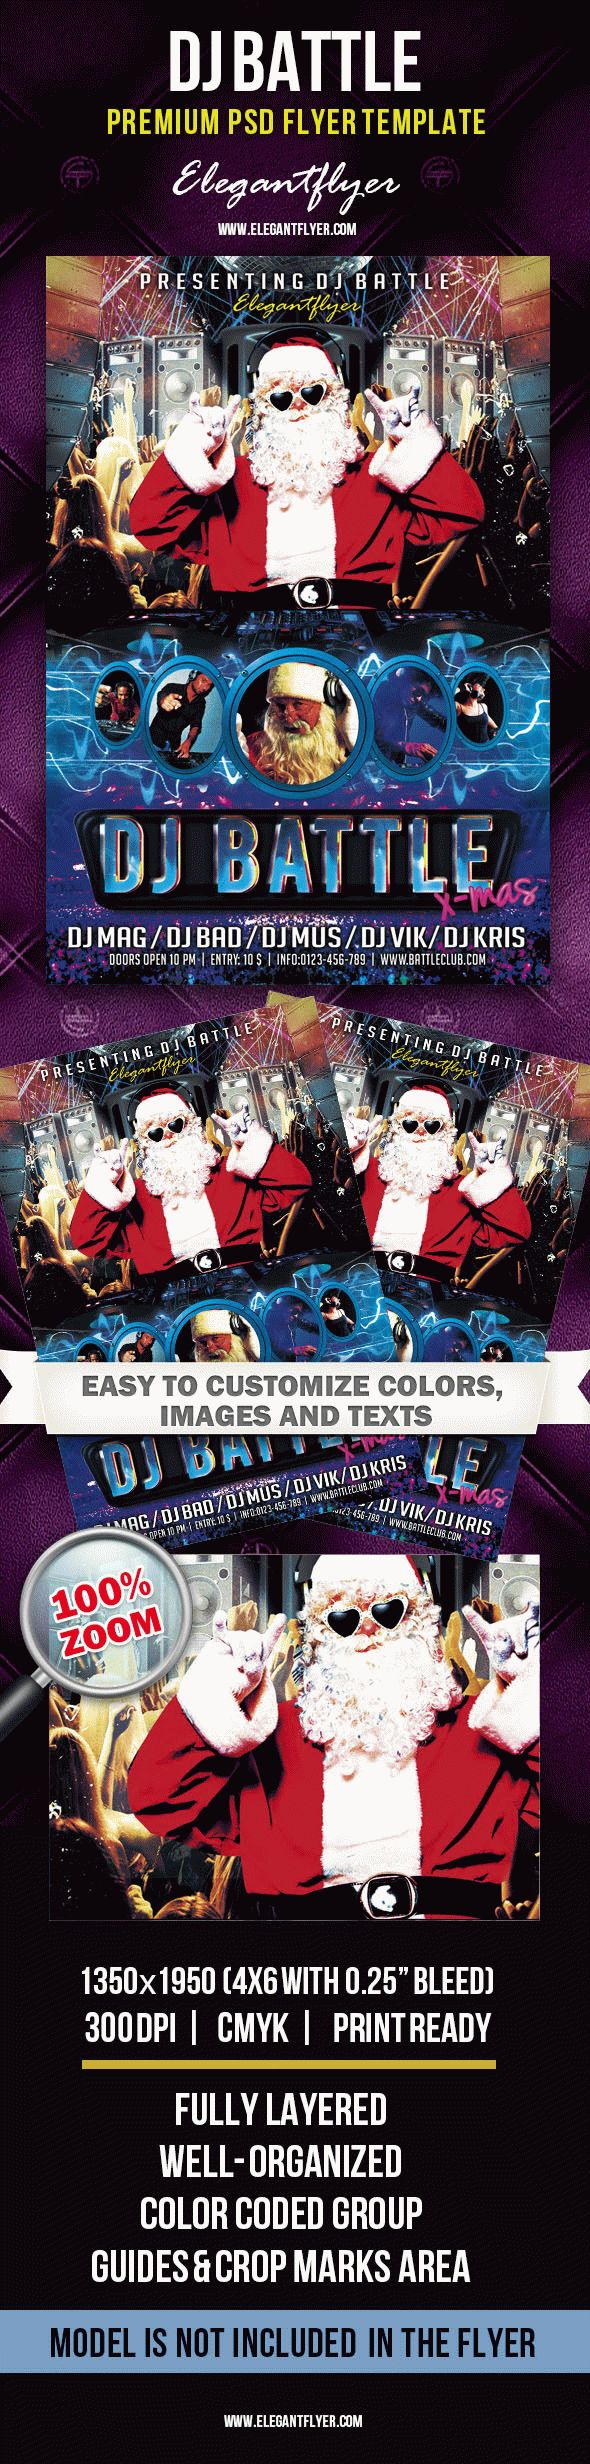 X-Mas Dj Battle – Premium Club flyer PSD Template